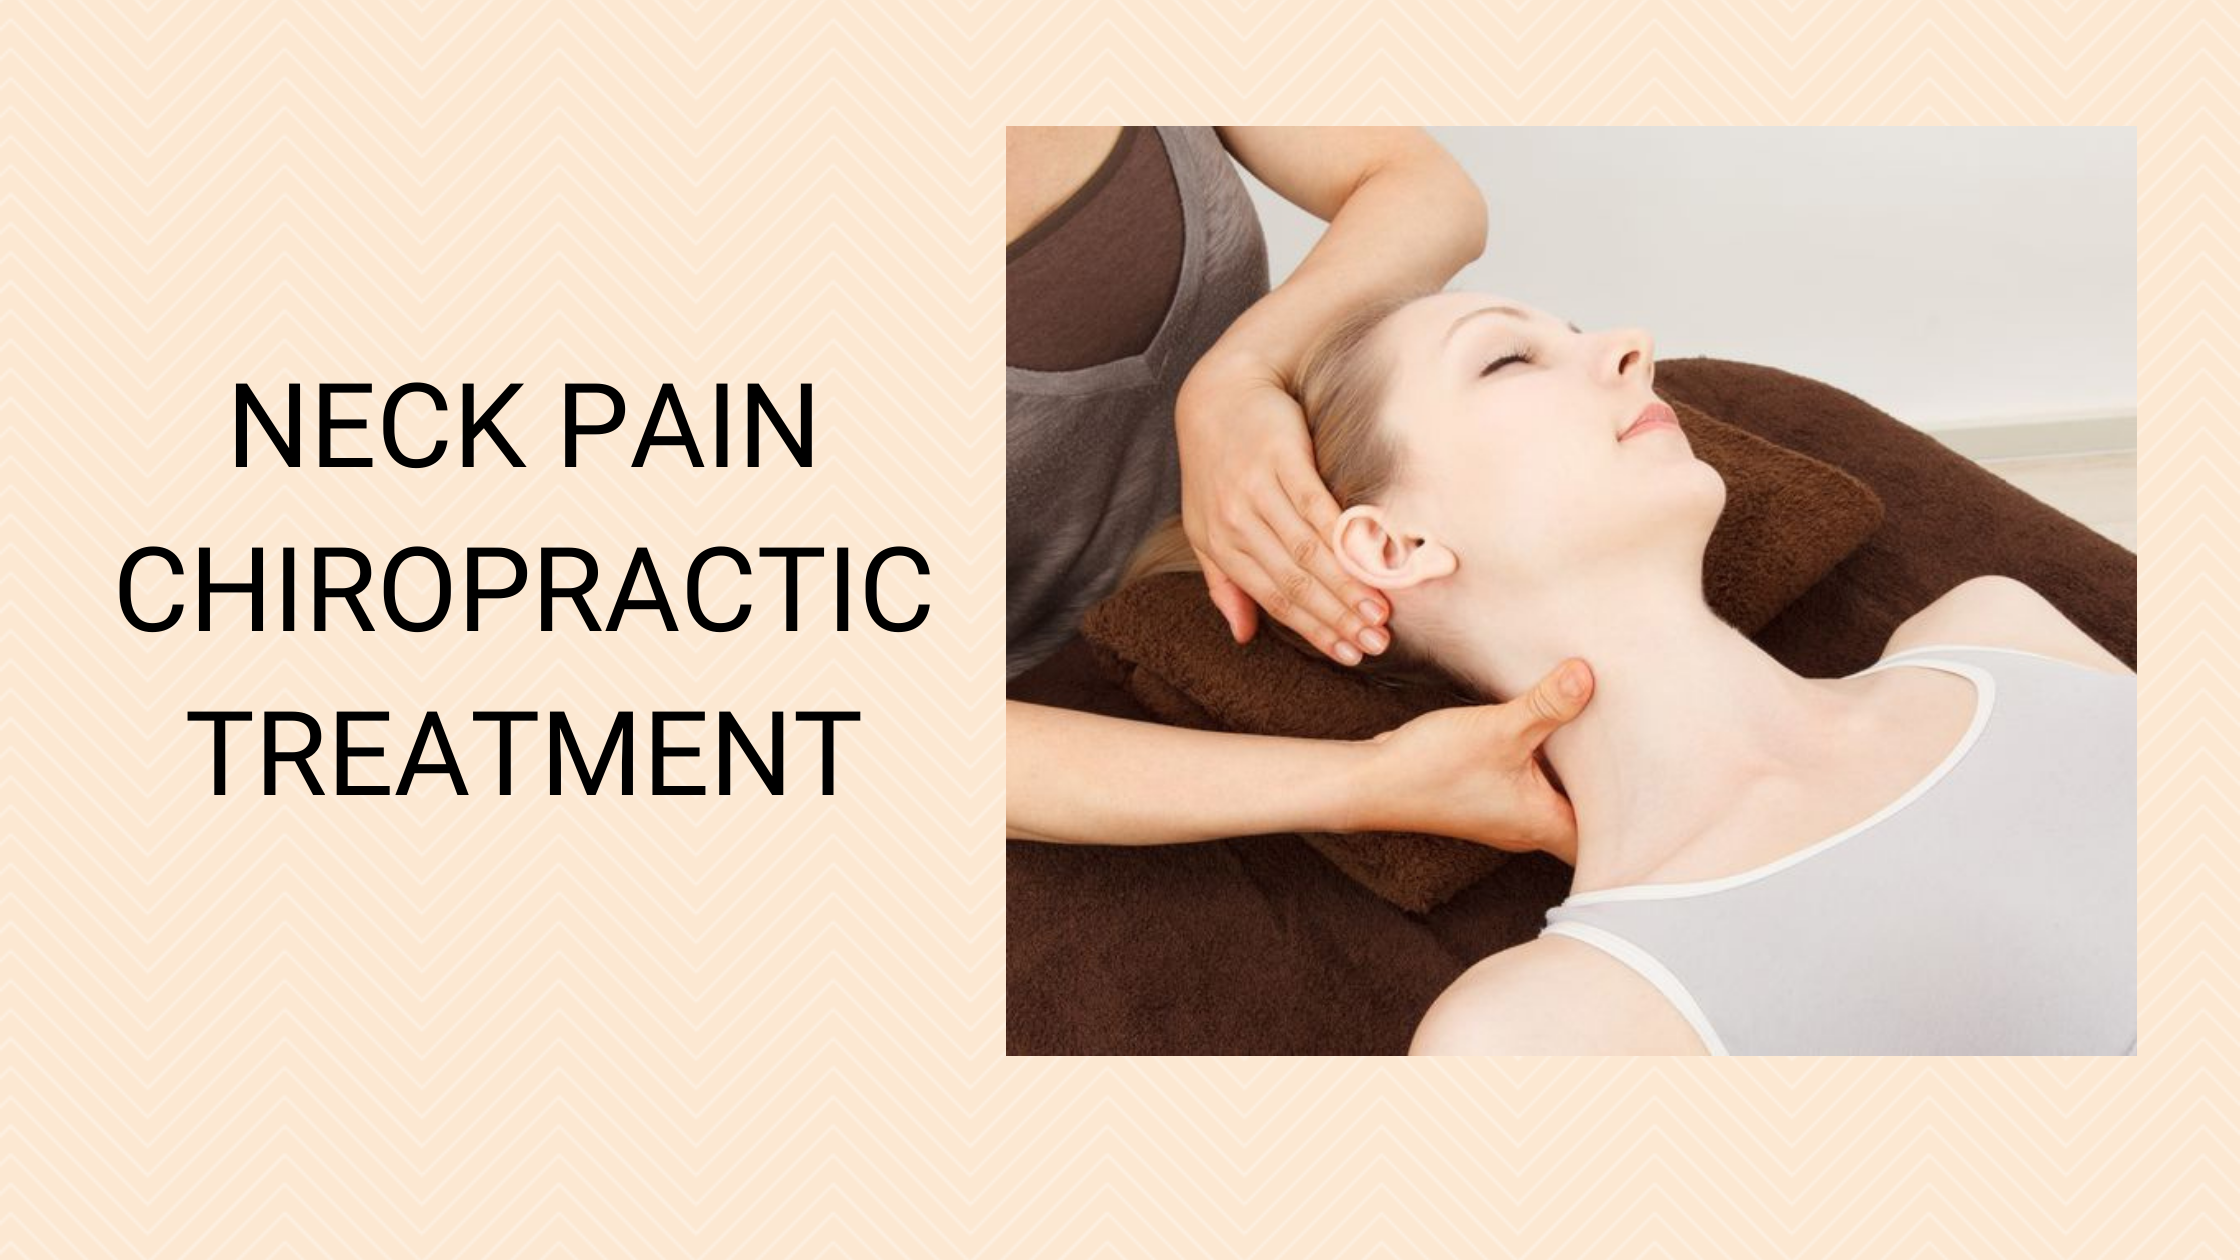 Effective Procedure Explaining How Women Should Deal With Neck Pain